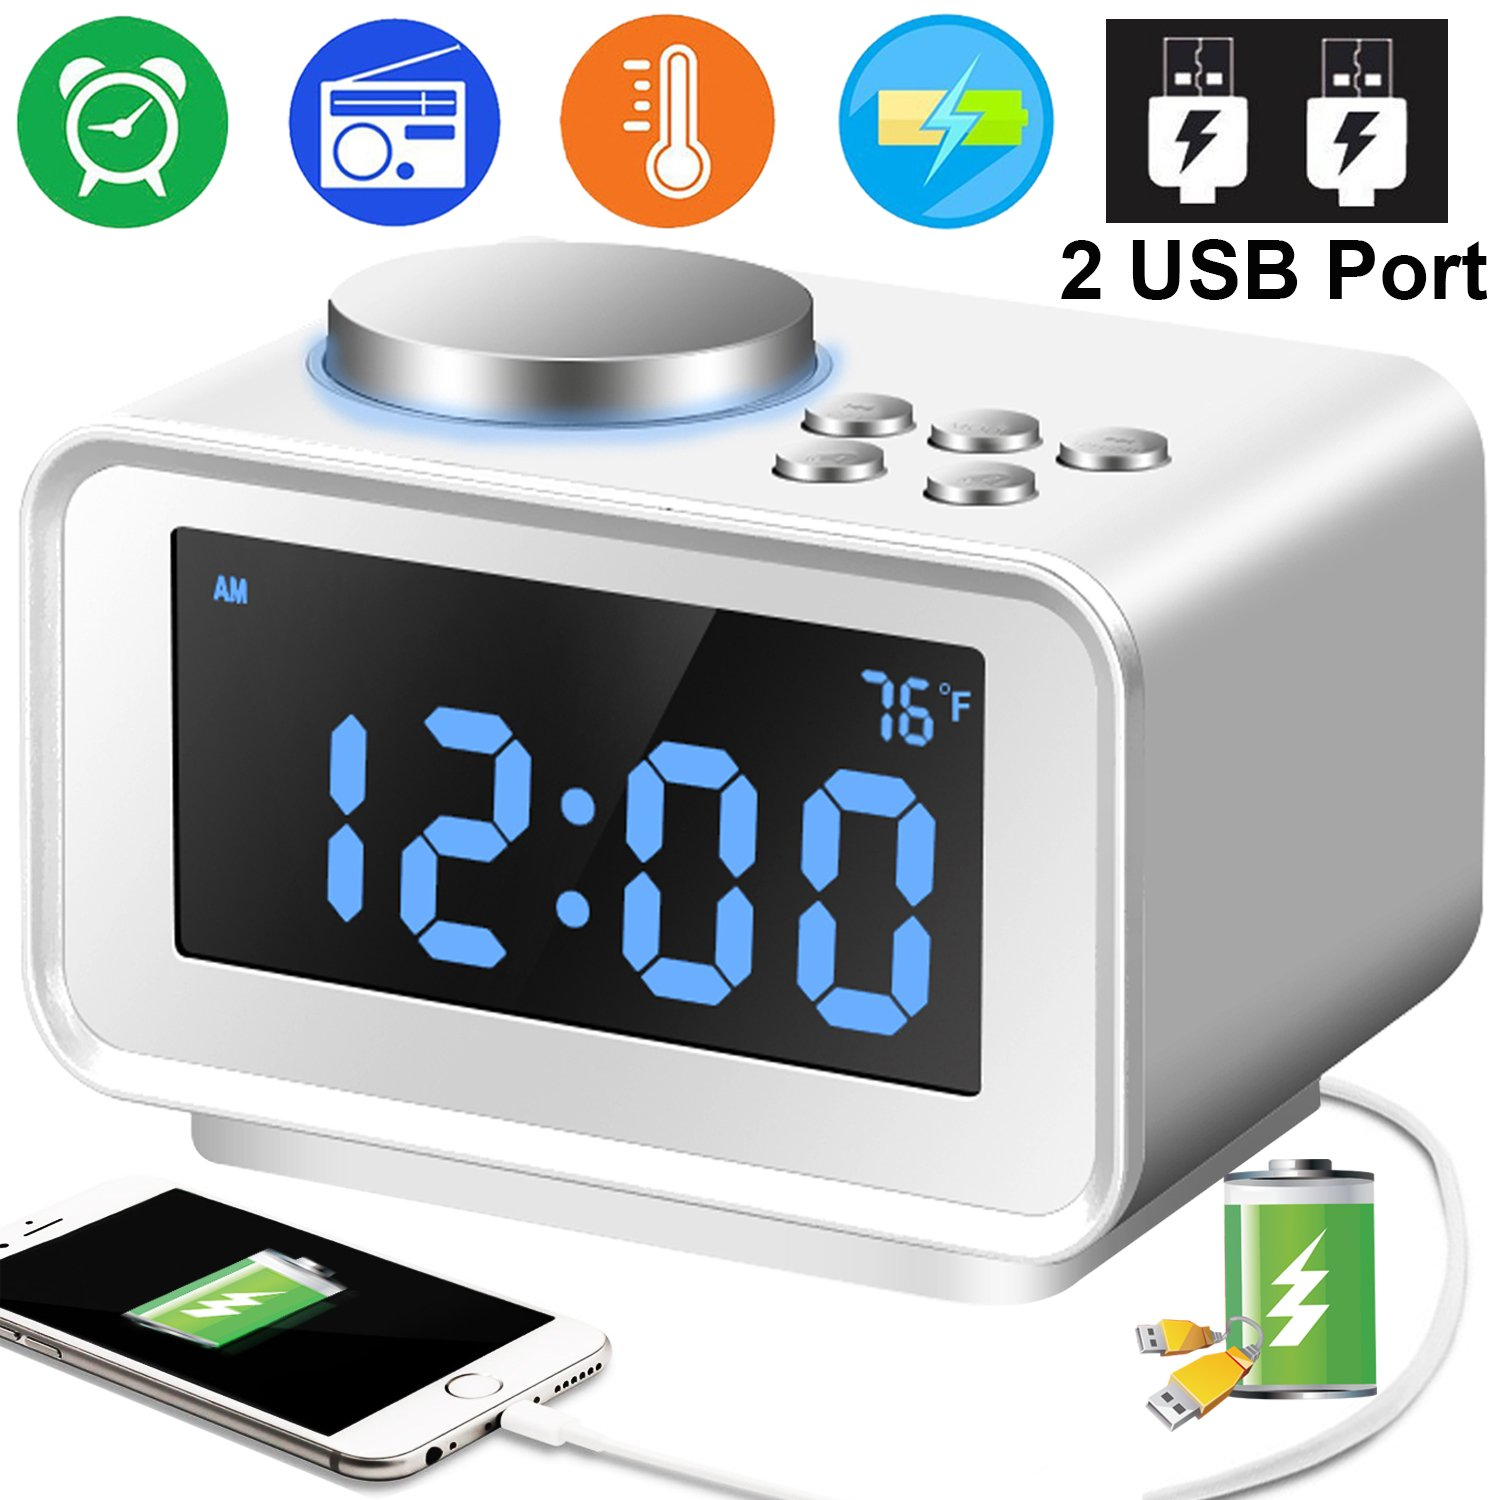 Duperym Radio Alarm Clock Digital FM Clocks Radio with 2 USB Phone Charging Port for iPhone Android 12H/24H - 3.2'' LCD Display 6 Dimmer for Women Men Travel Bedrooms Kitchen Office